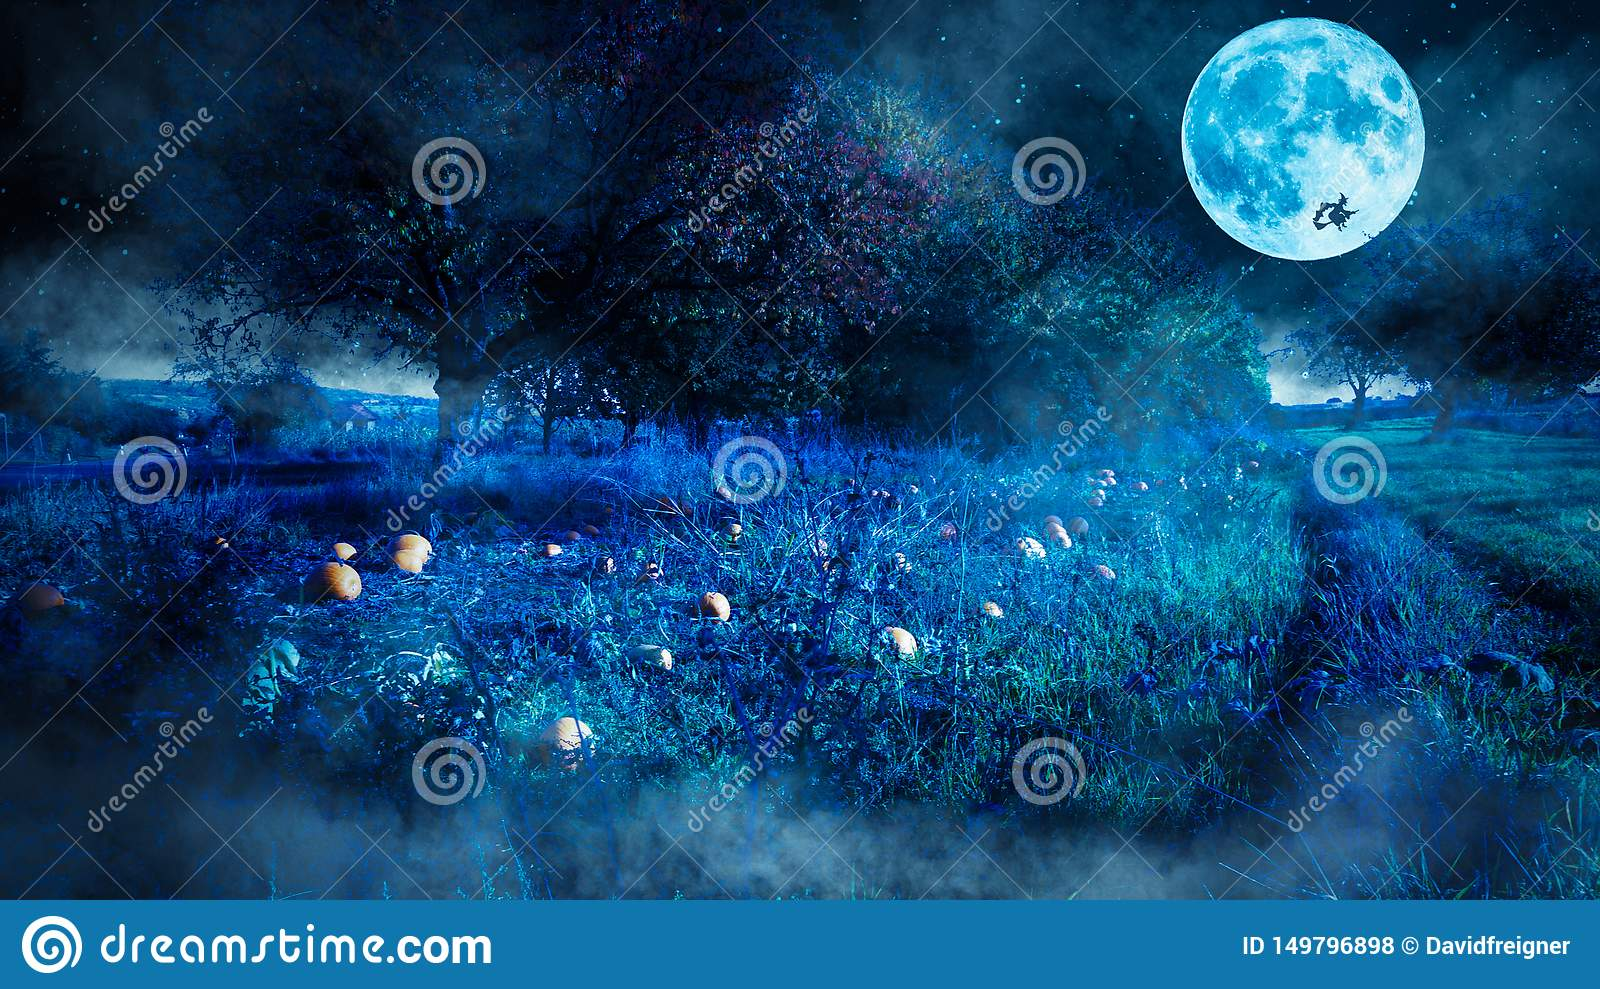 Scary halloween night scene with  a pumpkin field and a flying witch as a silhouette before the full moon